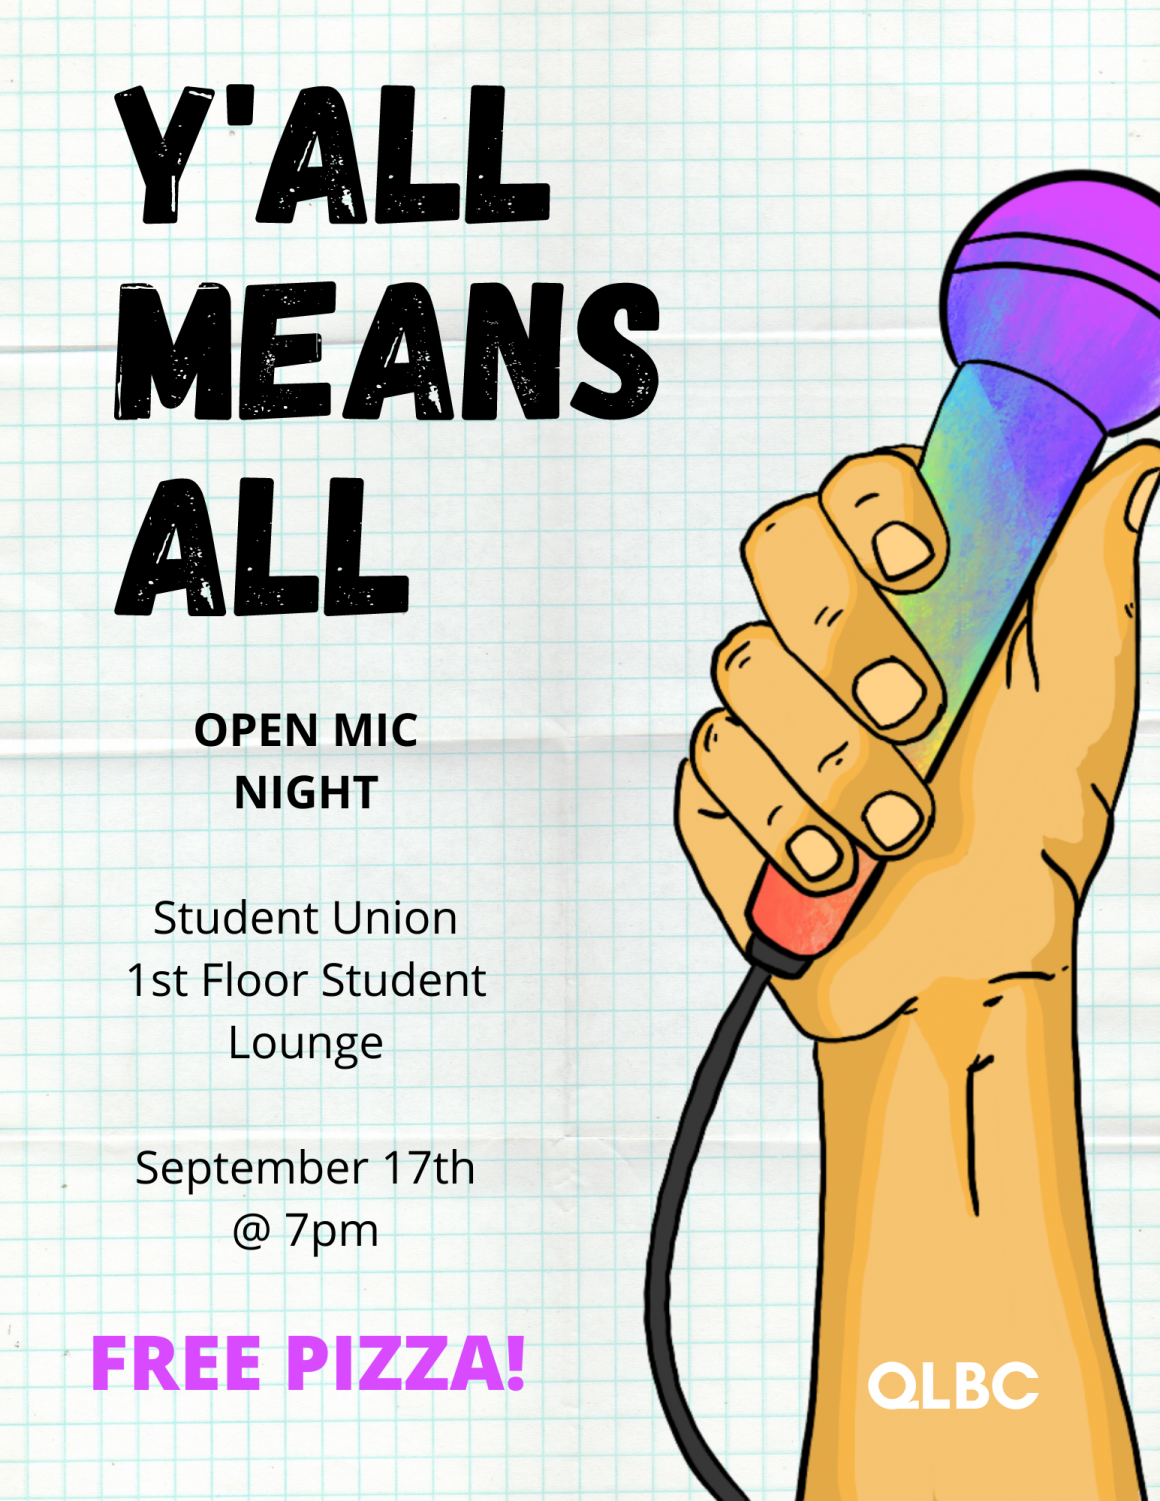 The Queer Leftist Book Club is hosting an open mic night where people can feel comfortable in their own skin and can speak freely without worrying about judgment.